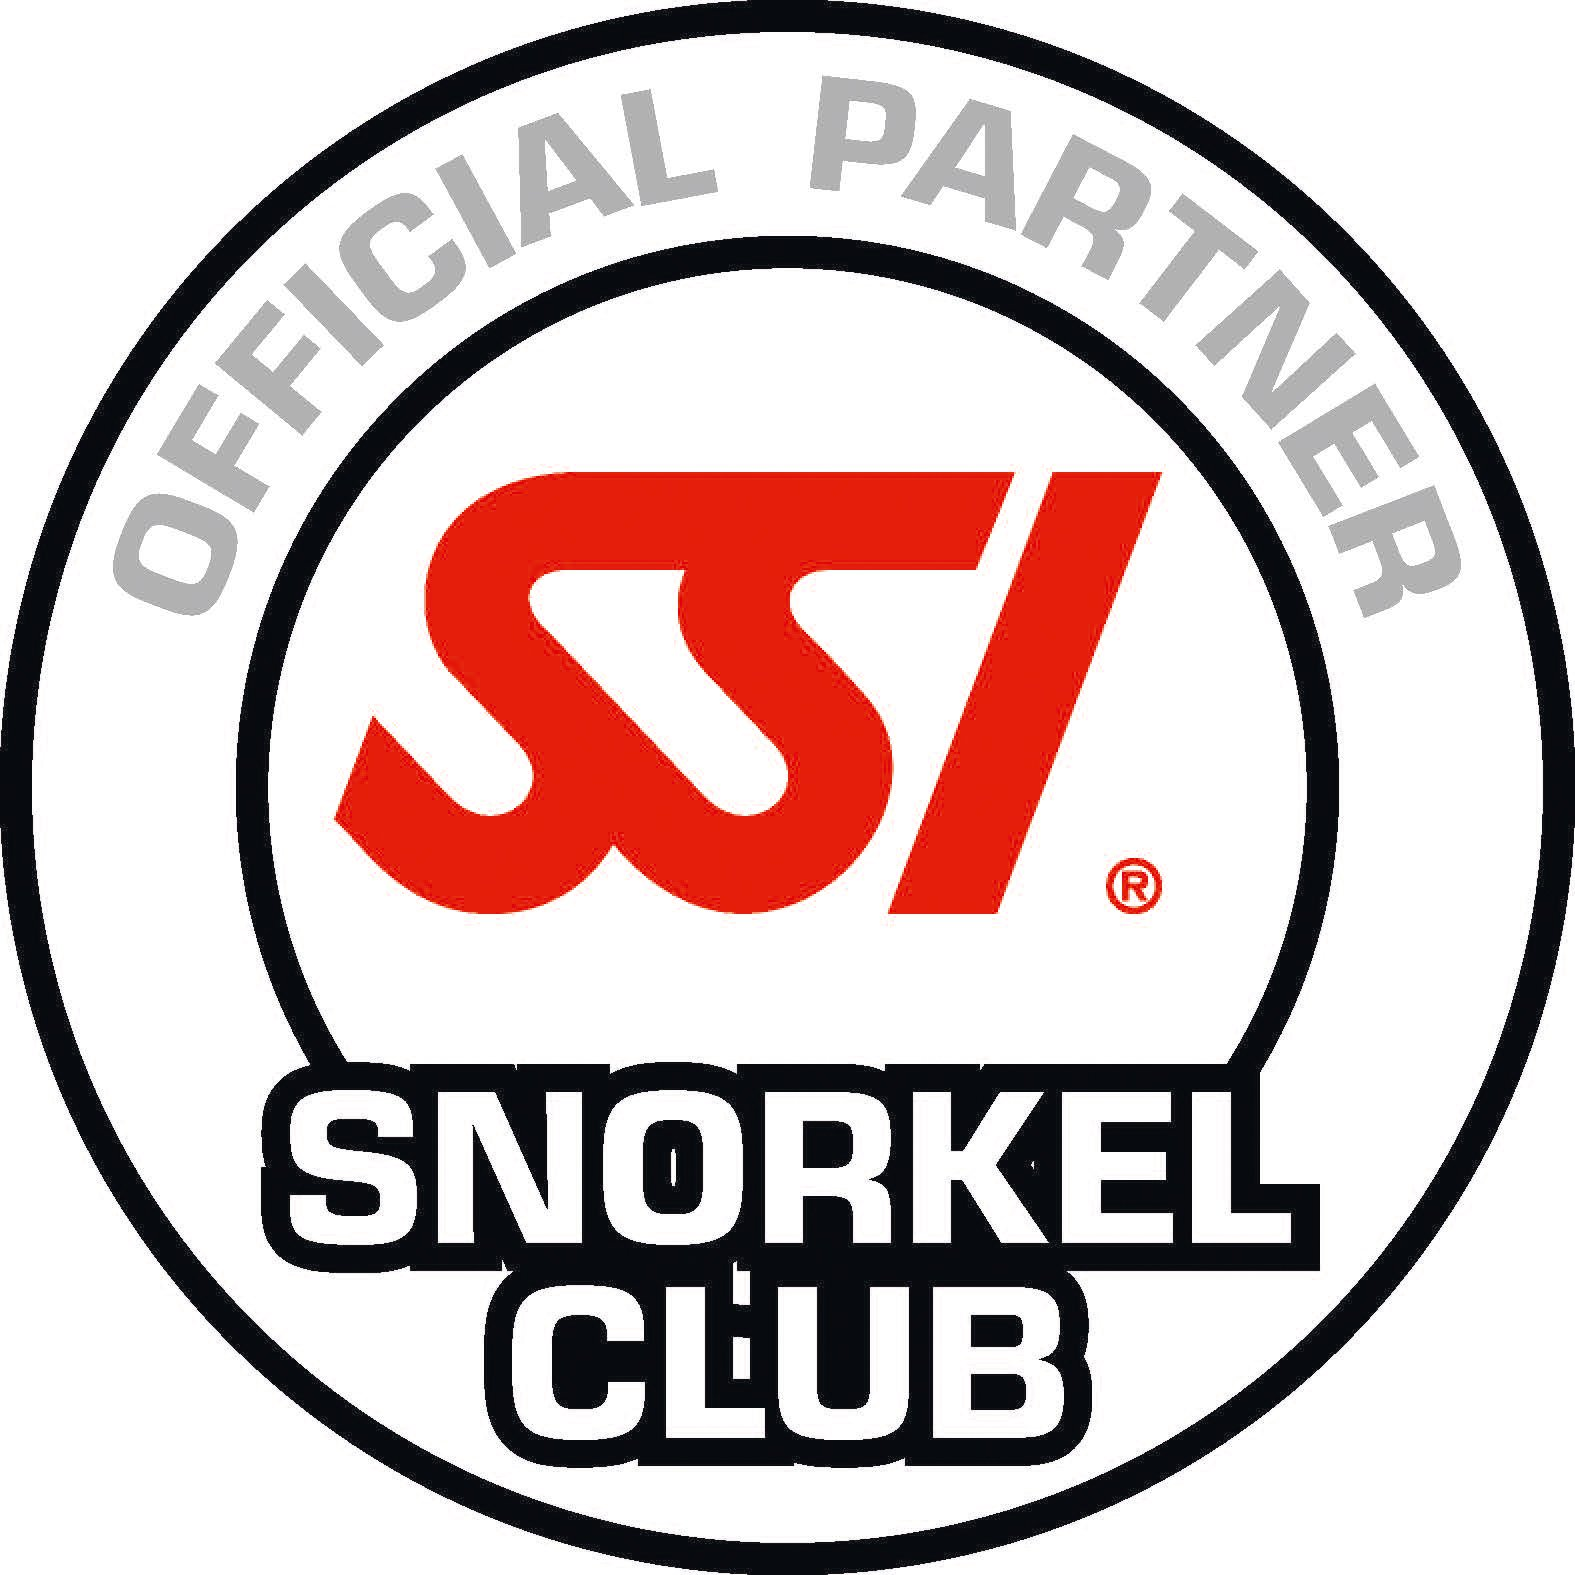 Image of SSI Snorkel Club